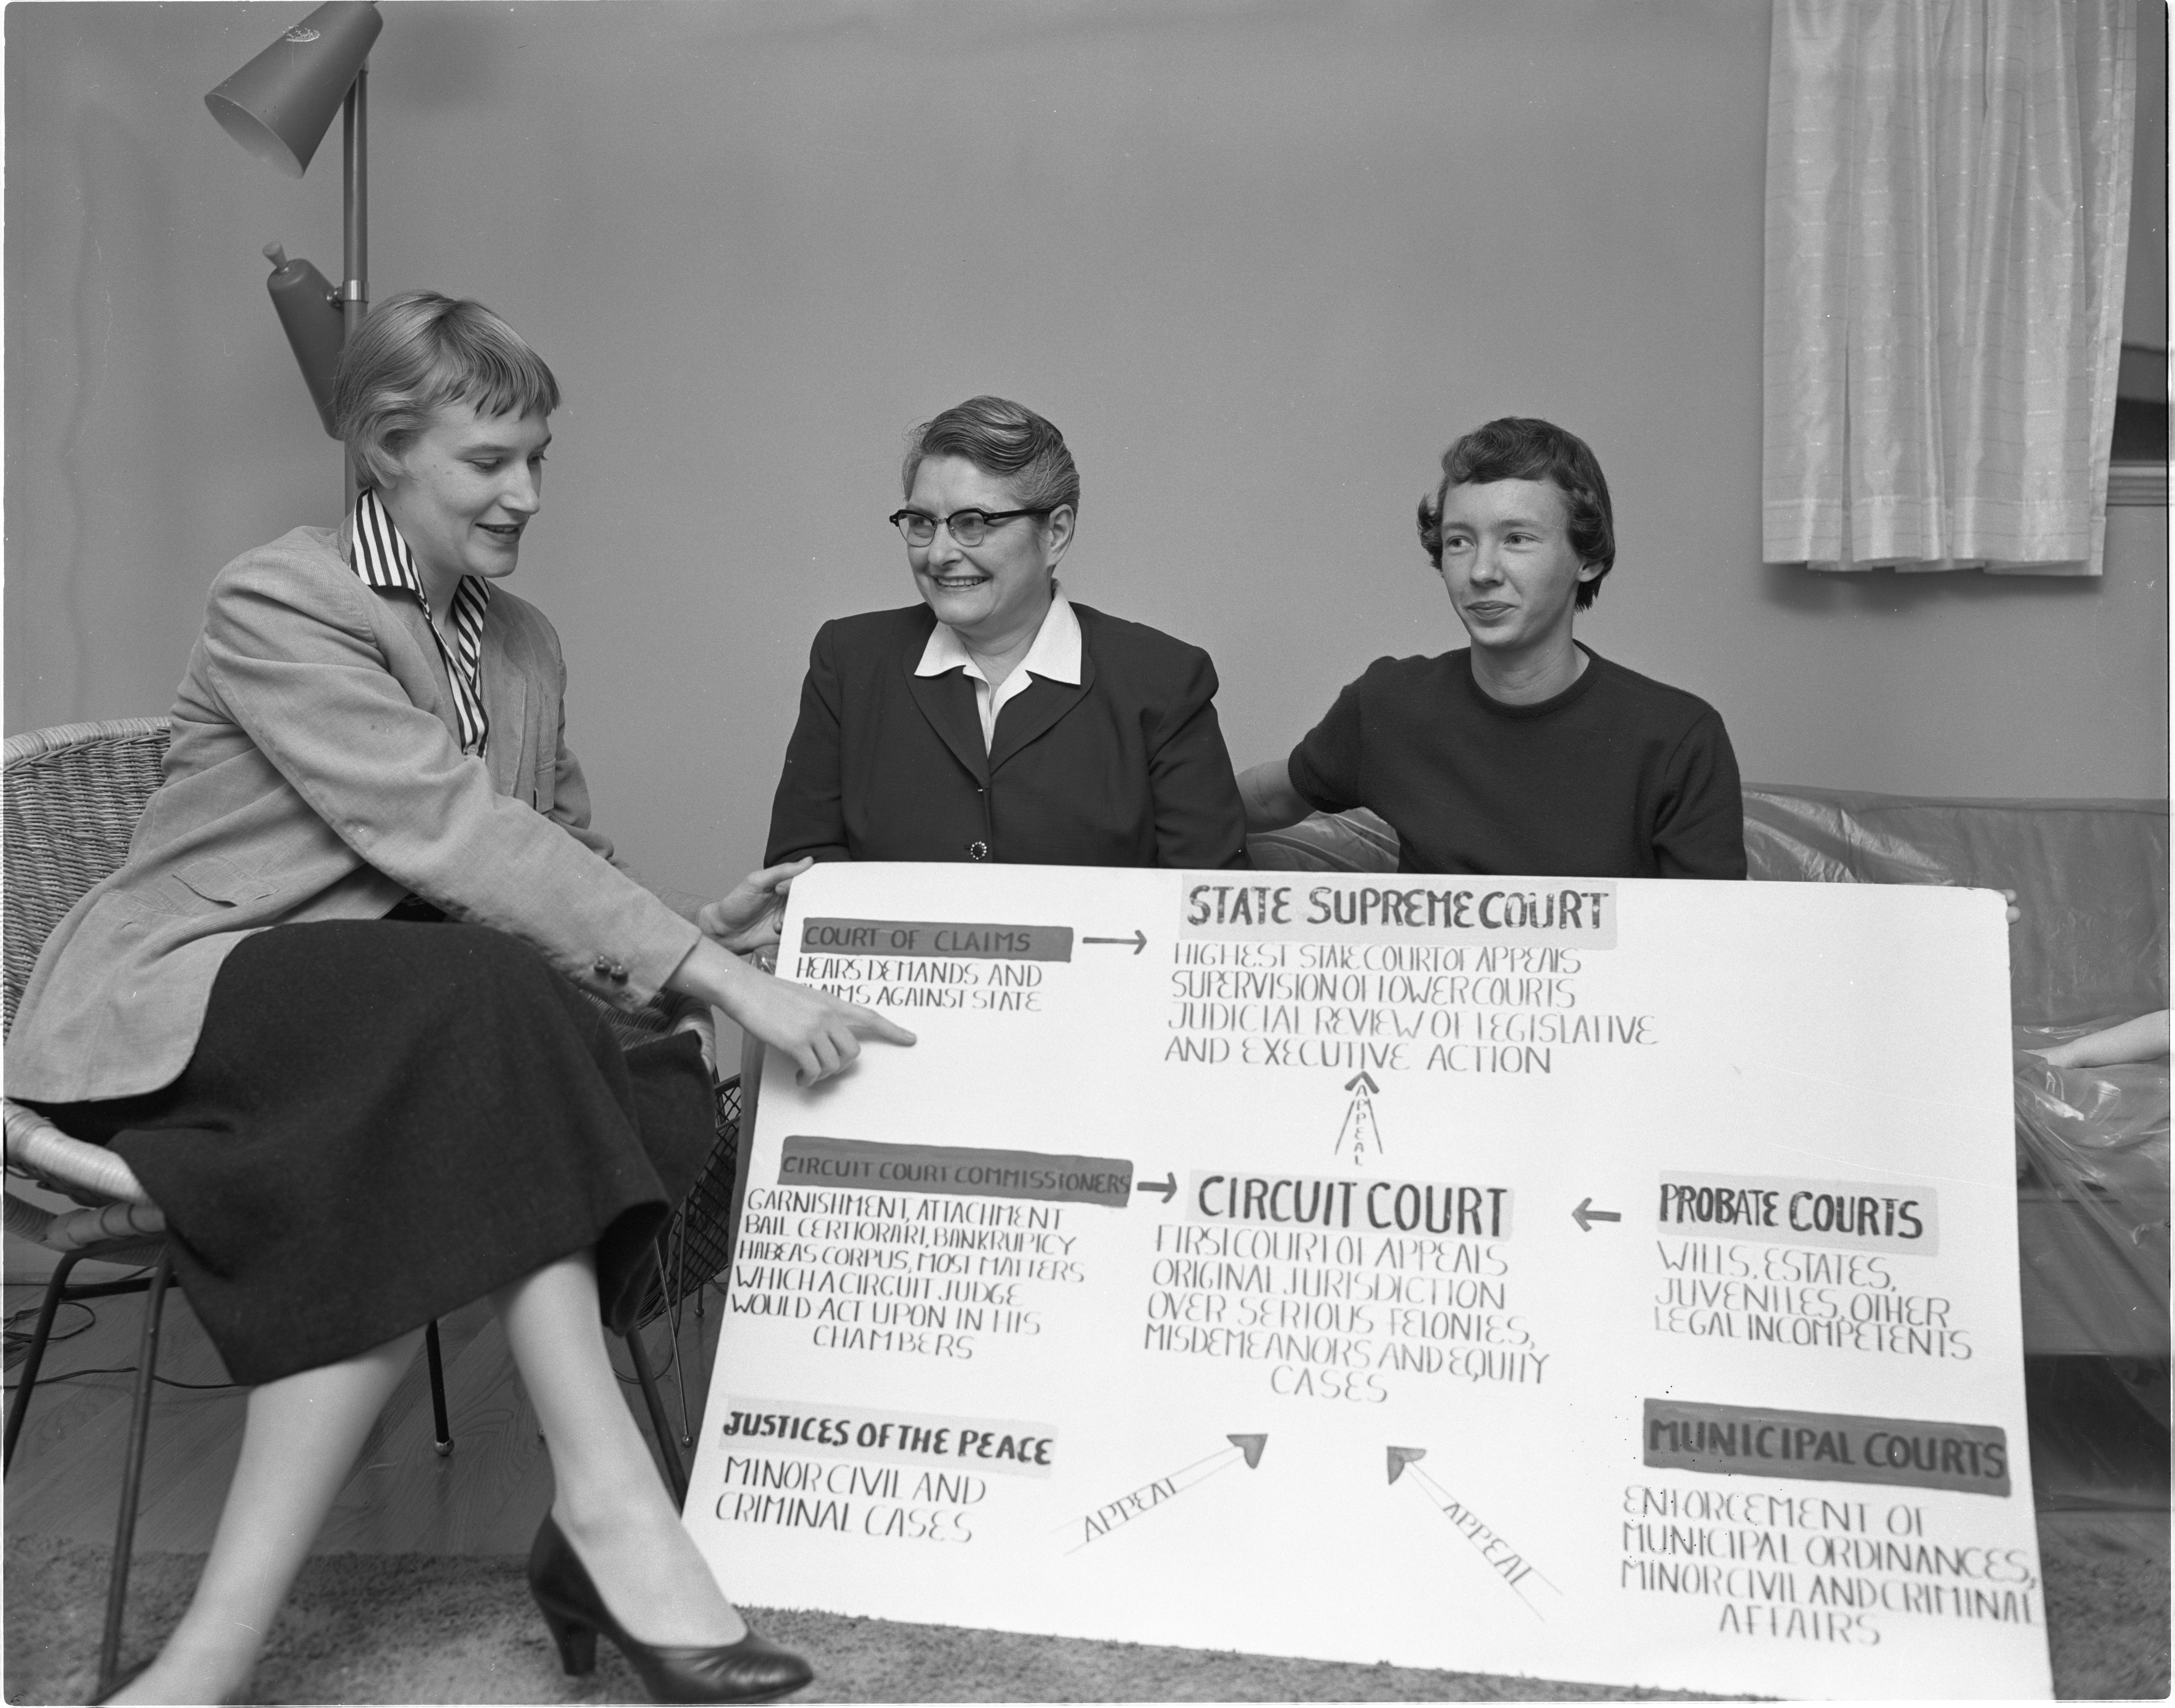 League Of Women Voters Members Rehearse A Skit For An Upcoming Meeting, November 1956 image